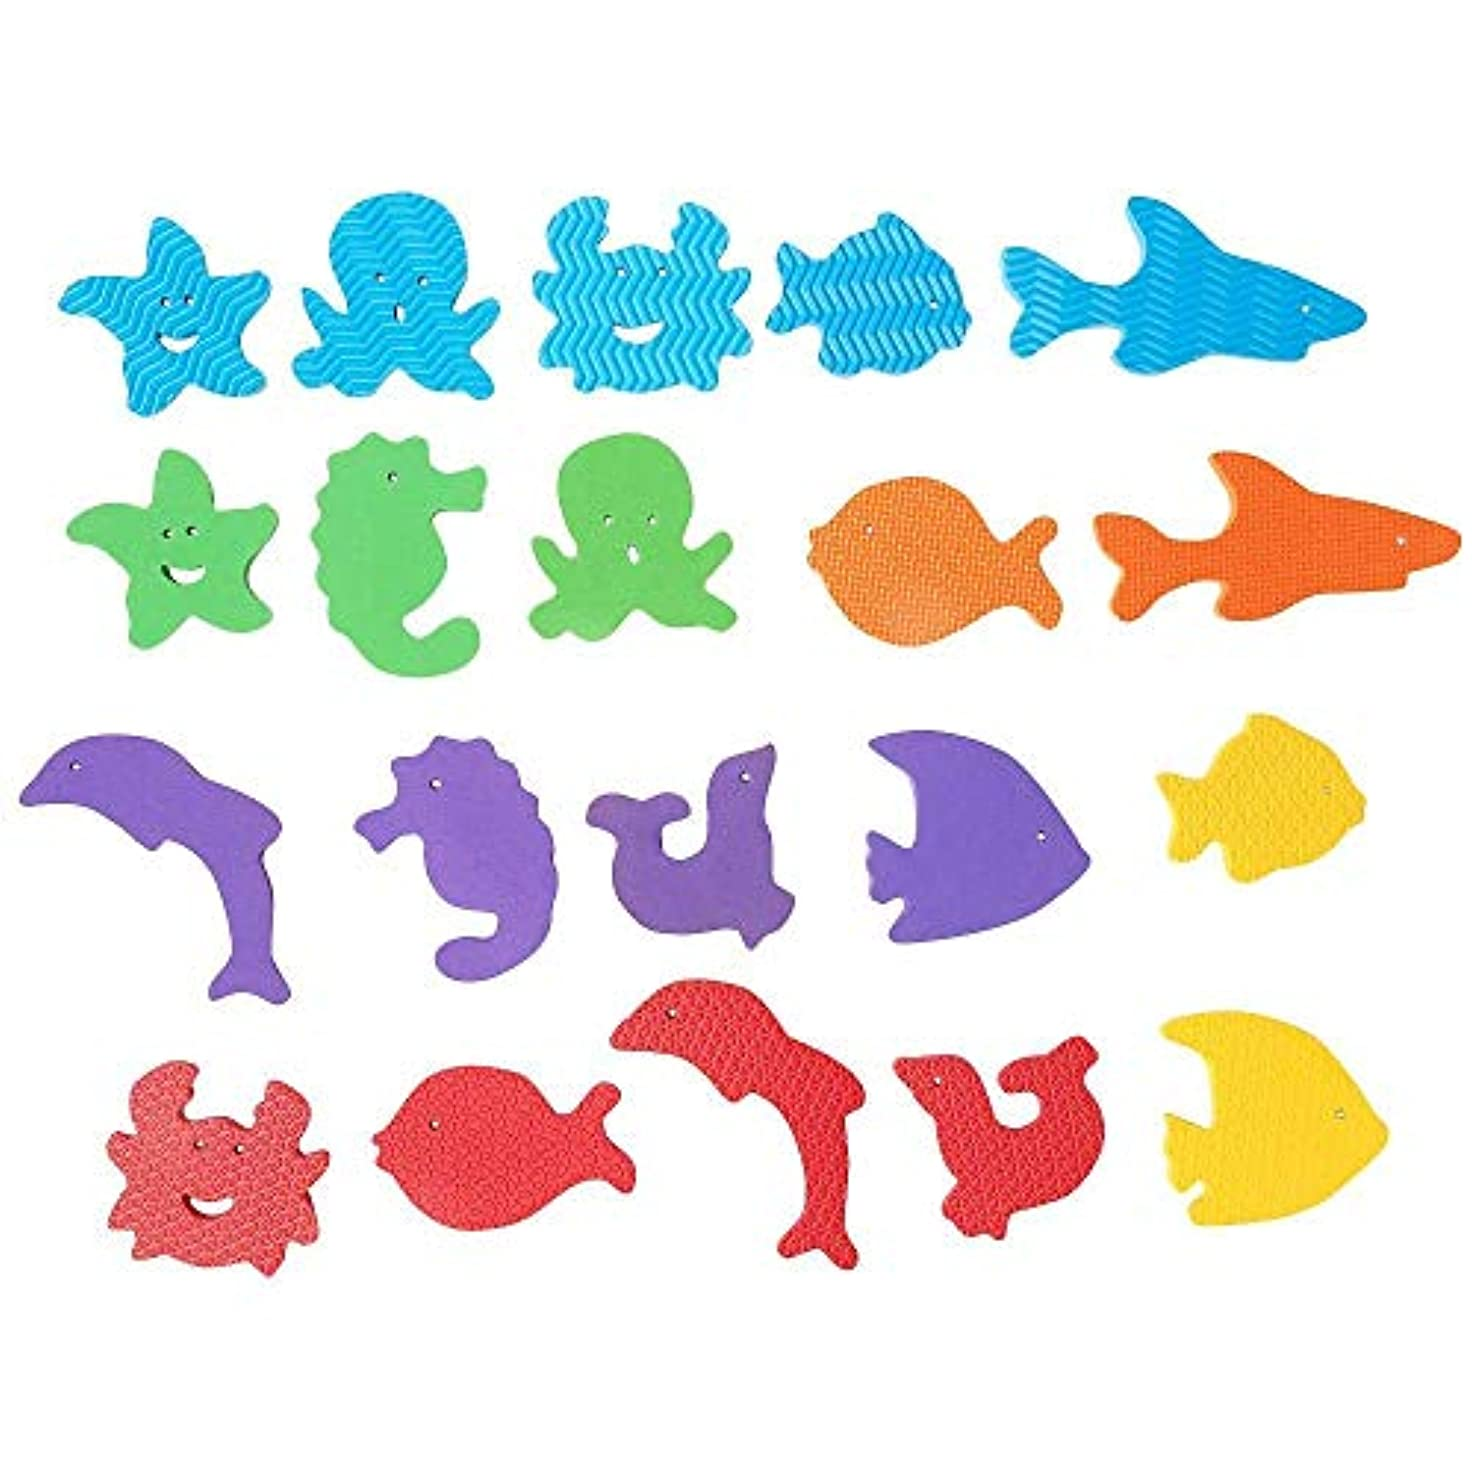 発行まもなく抽出Babies R Us Foam Sea Animal Bath Set - 20 Pieces by Babies R Us [並行輸入品]